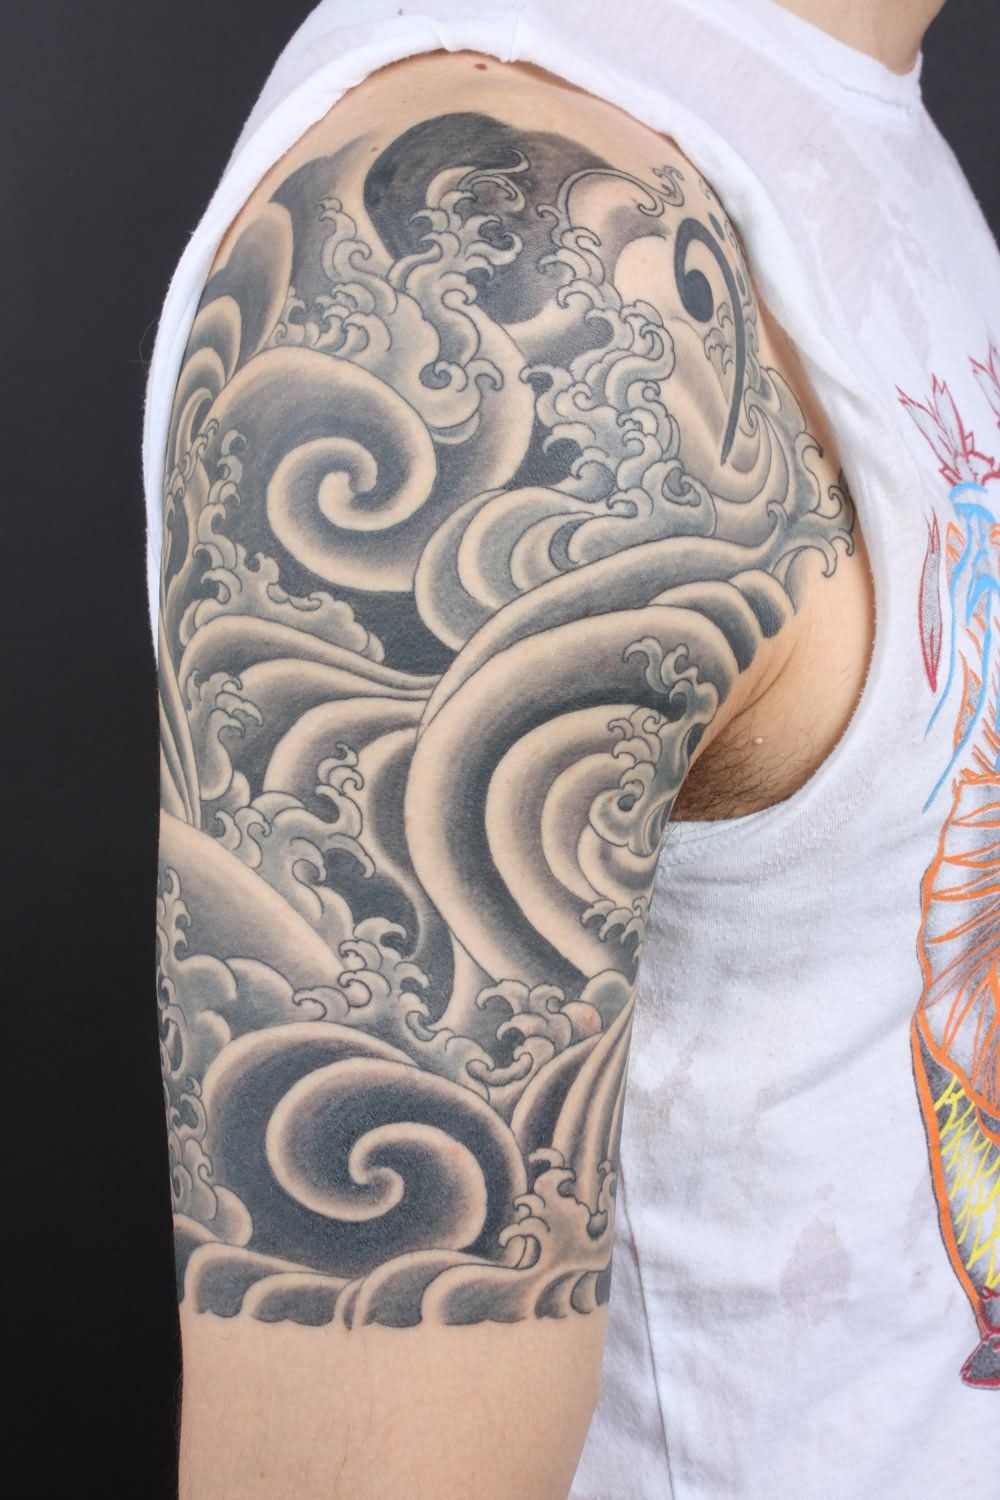 21d8697c9 Black And Grey Japanese Cloud Tattoo On Right Half Sleeve | Tiger ...